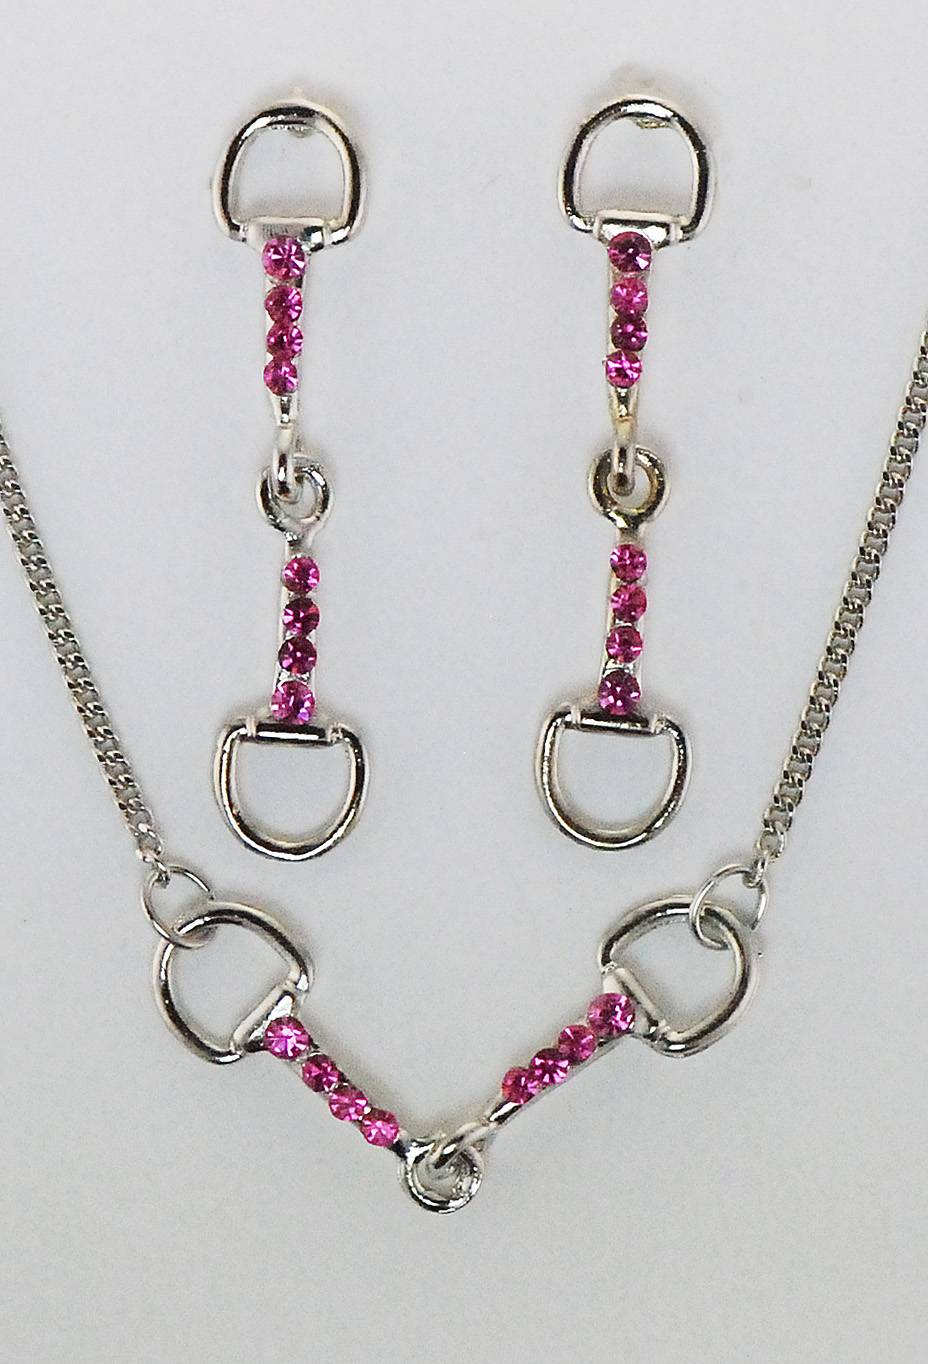 Finishing Touch Snaffle Bit Neck with Crystal Stones Jewelry Set